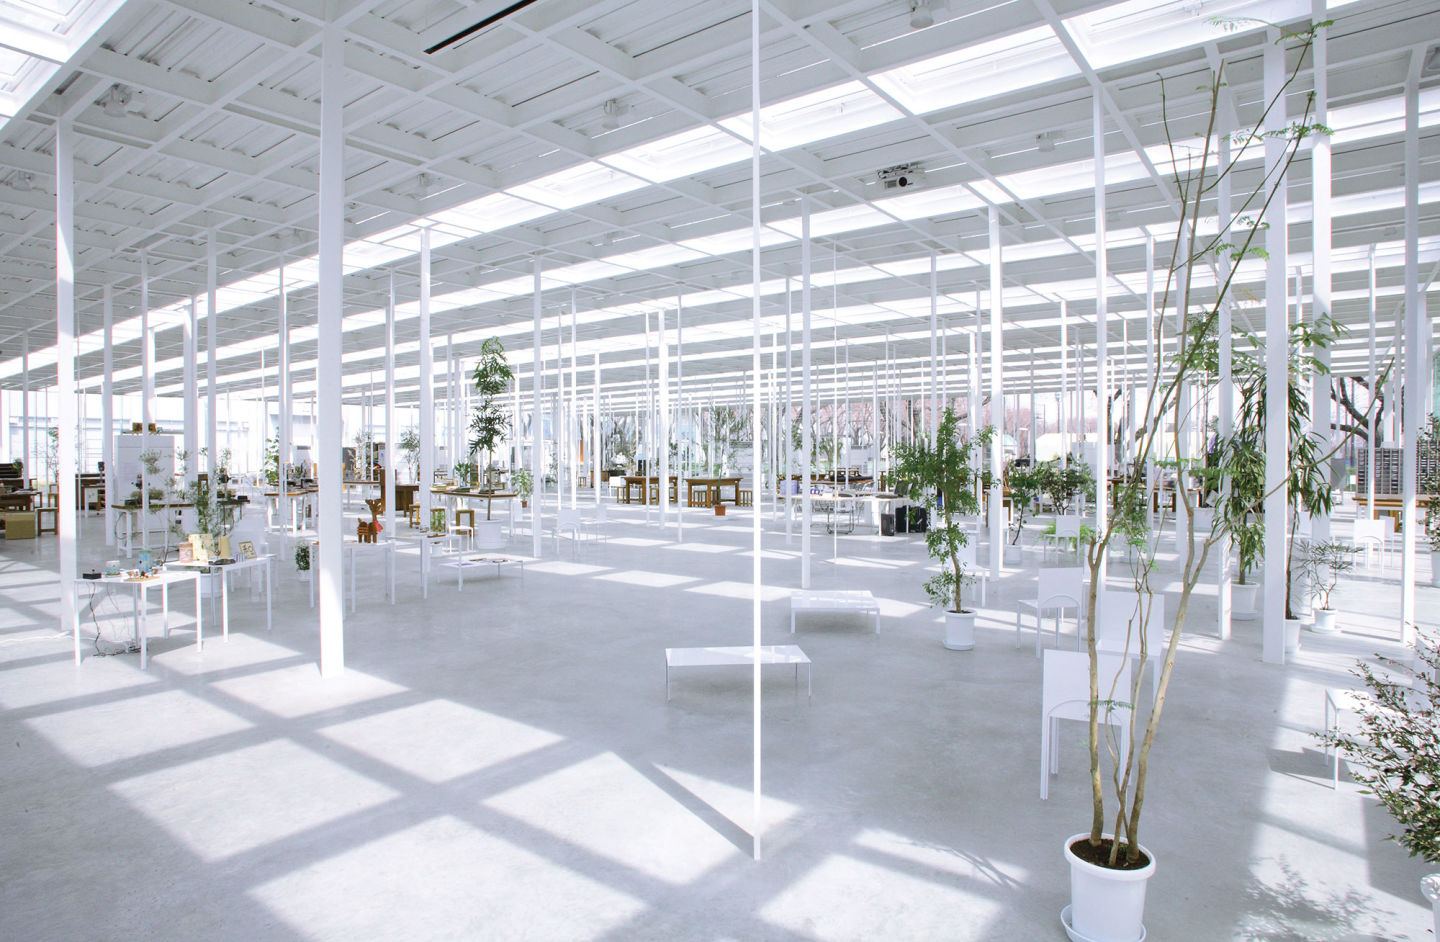 Kanagawa Institute of Technology / Junya Ishigami + Associates